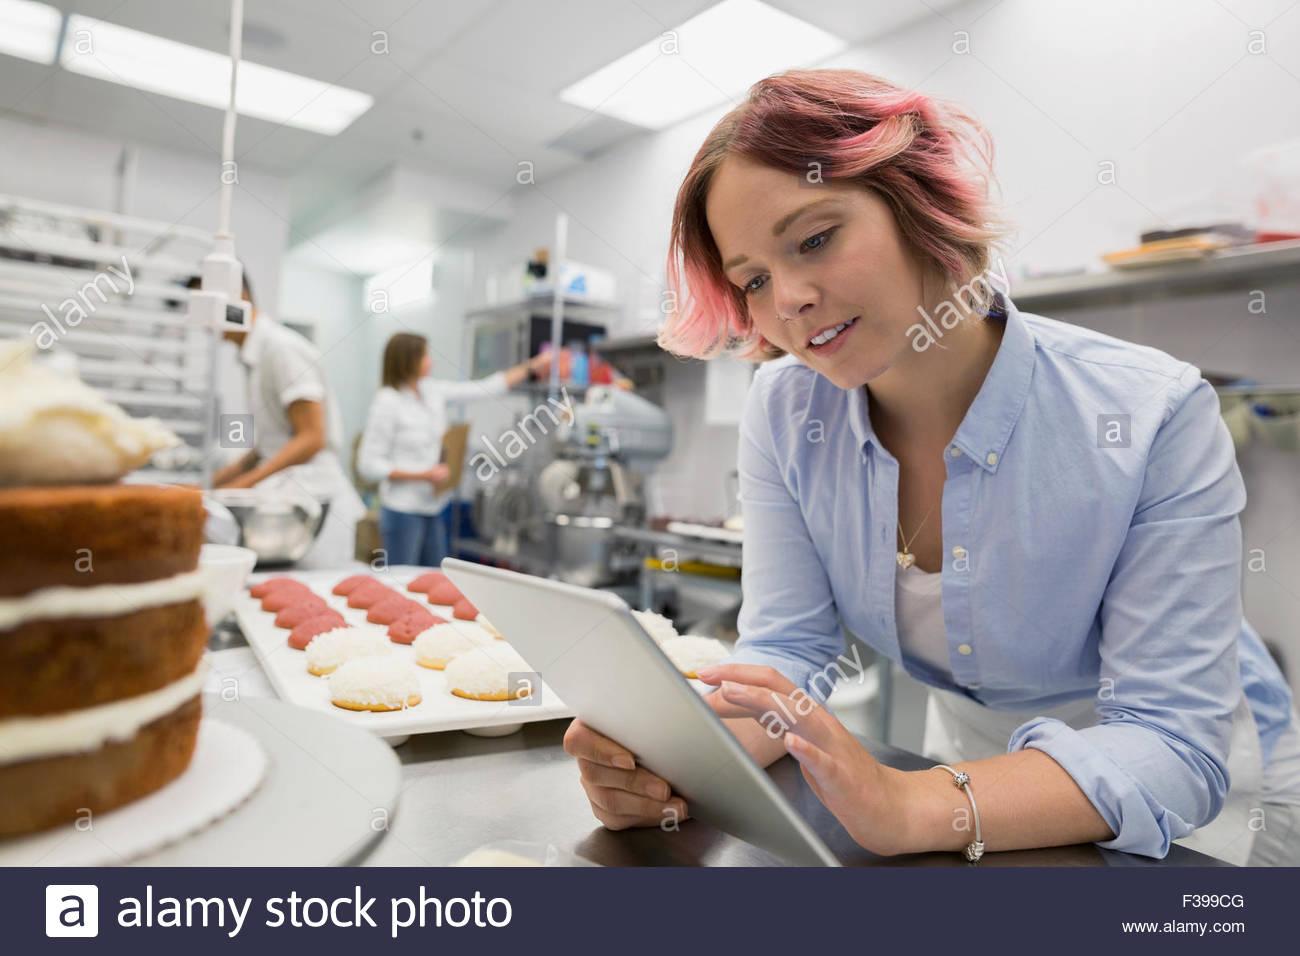 Pastry chef with digital tablet in commercial kitchen - Stock Image